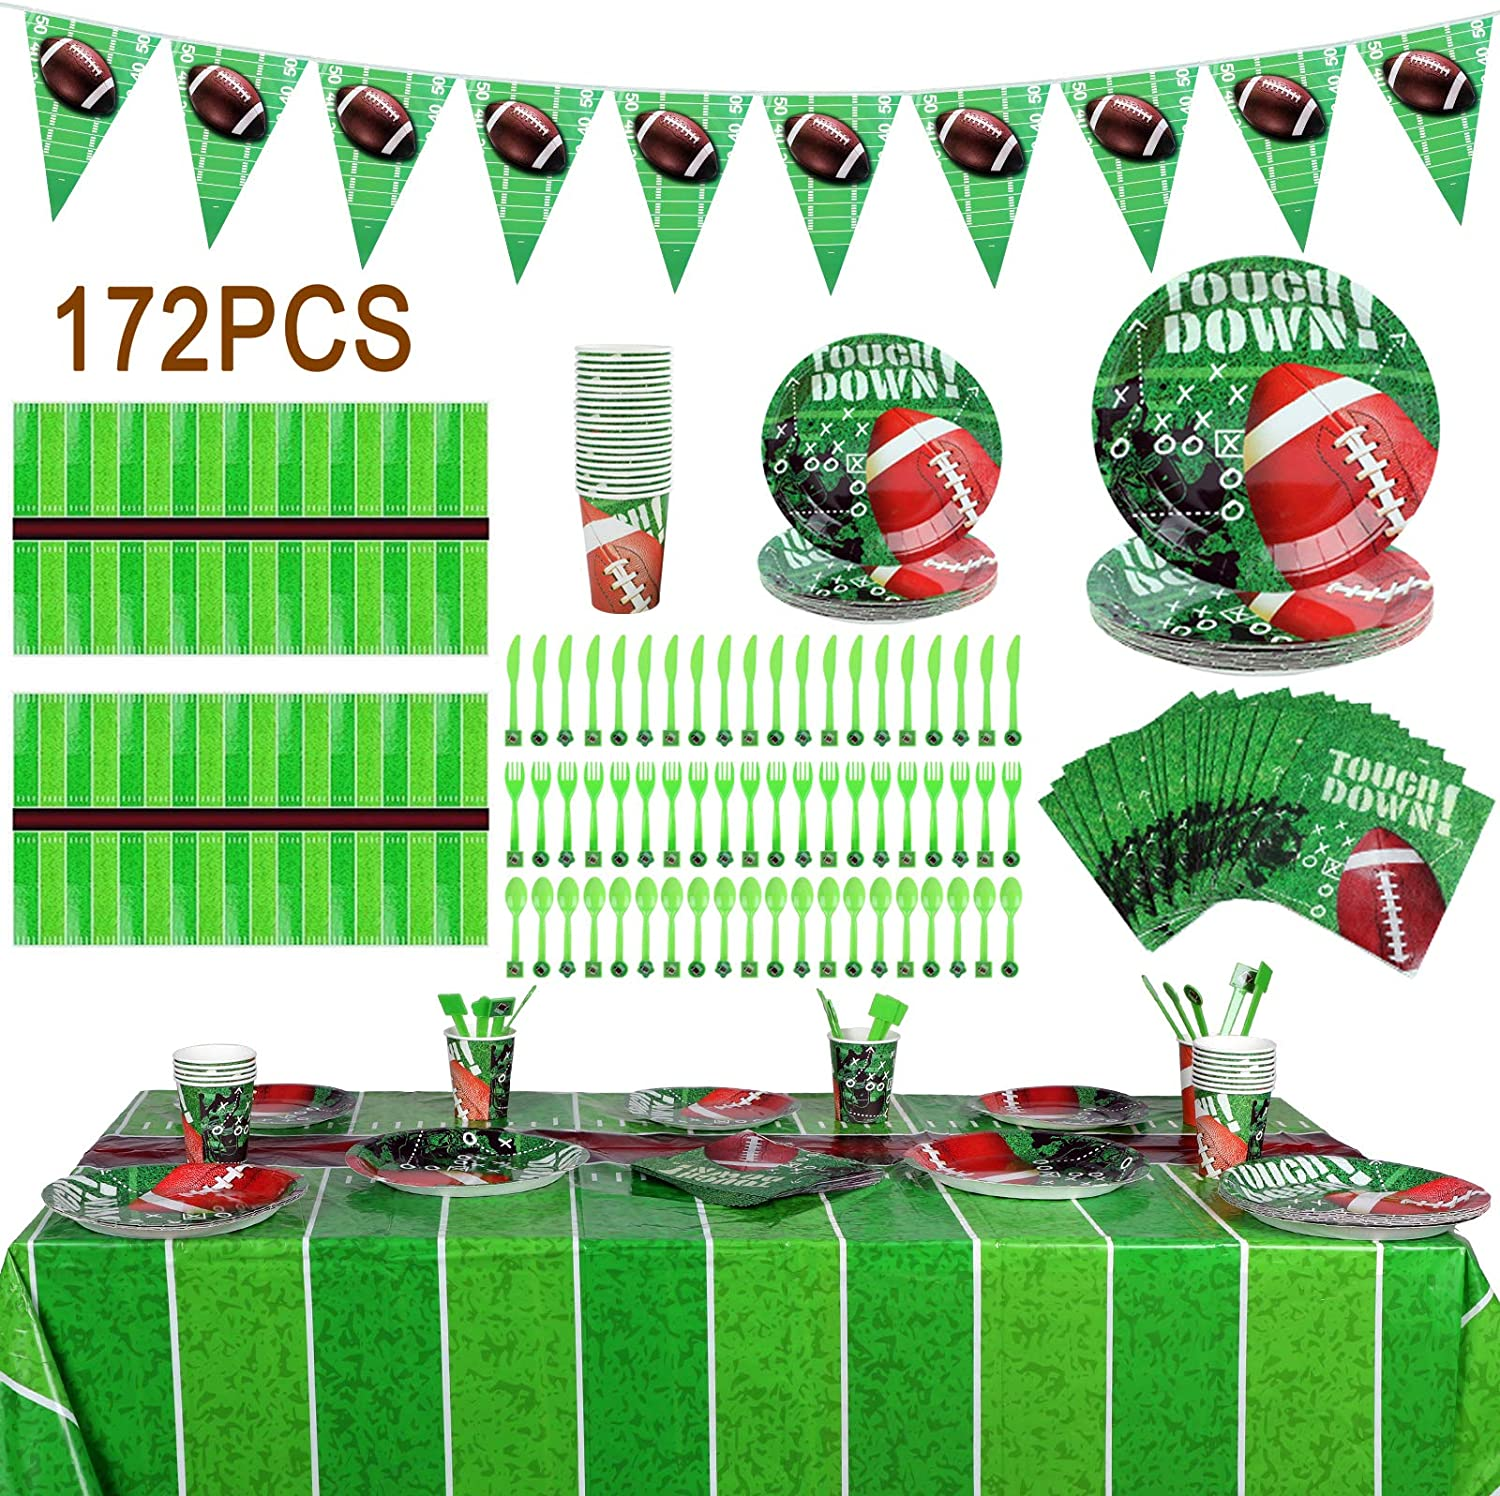 Sunnyholiday 172PCS Football Theme Party Decoration Supplies Set(Serves 20) Include Tablecloths, Banners, Plates, Cups, Napkins, Flatware Tableware Accessory for Super Bowl Soccer Theme Birthday Party